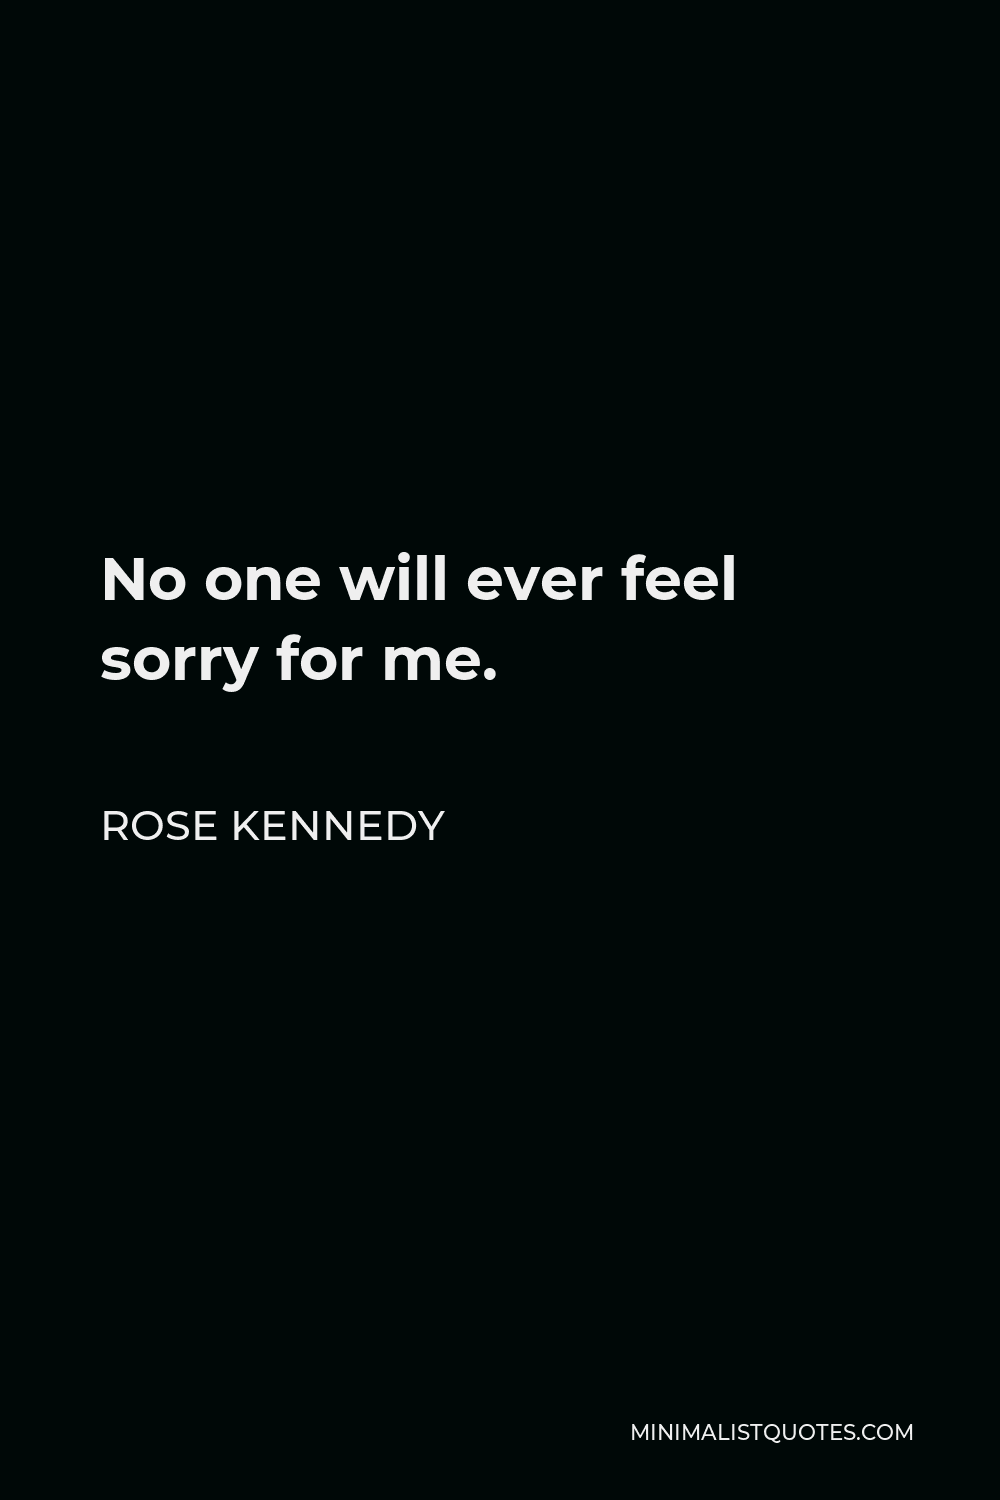 Rose Kennedy Quote - No one will ever feel sorry for me.